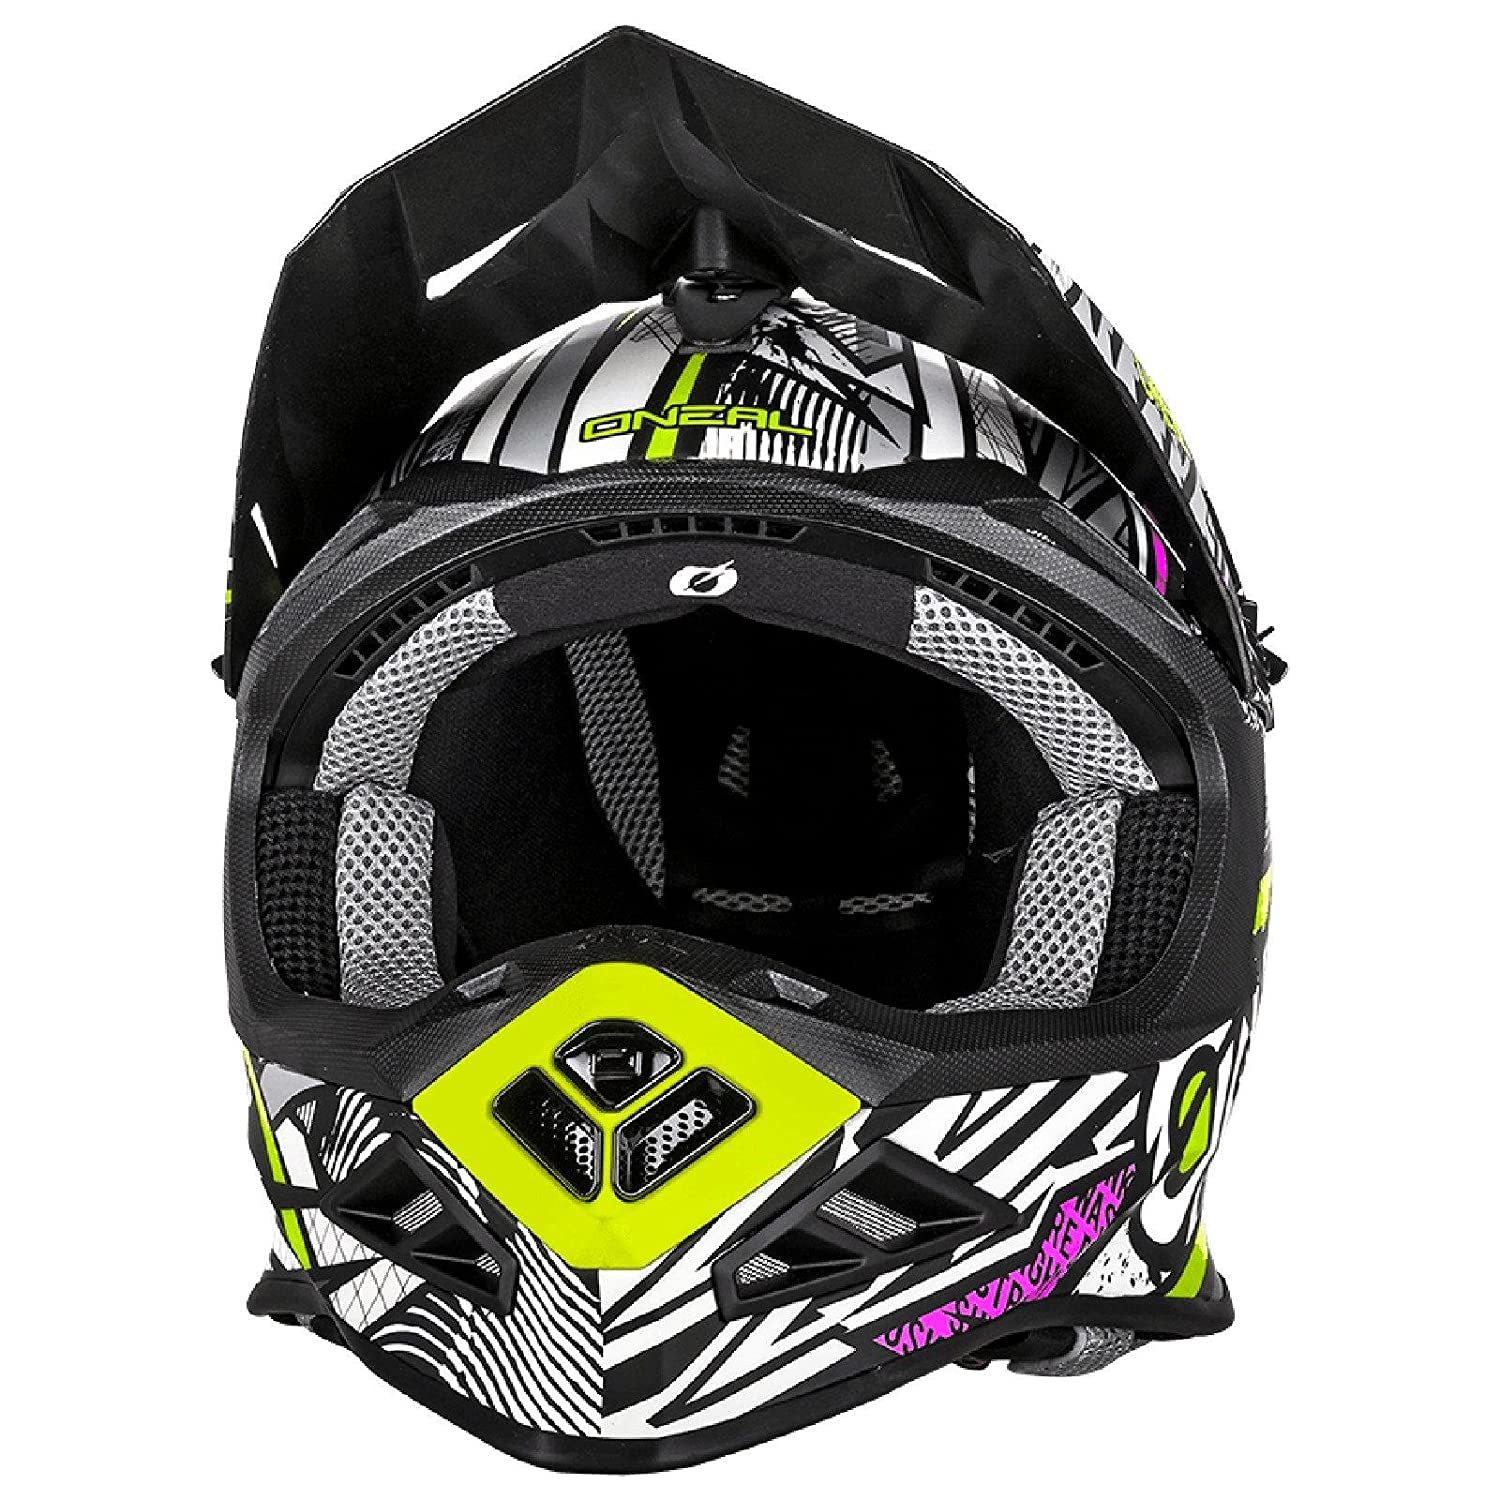 0614-2 ONeal 8Series MX Helm Synthy Motocross Enduro Offroad Quad Cross Motorrad